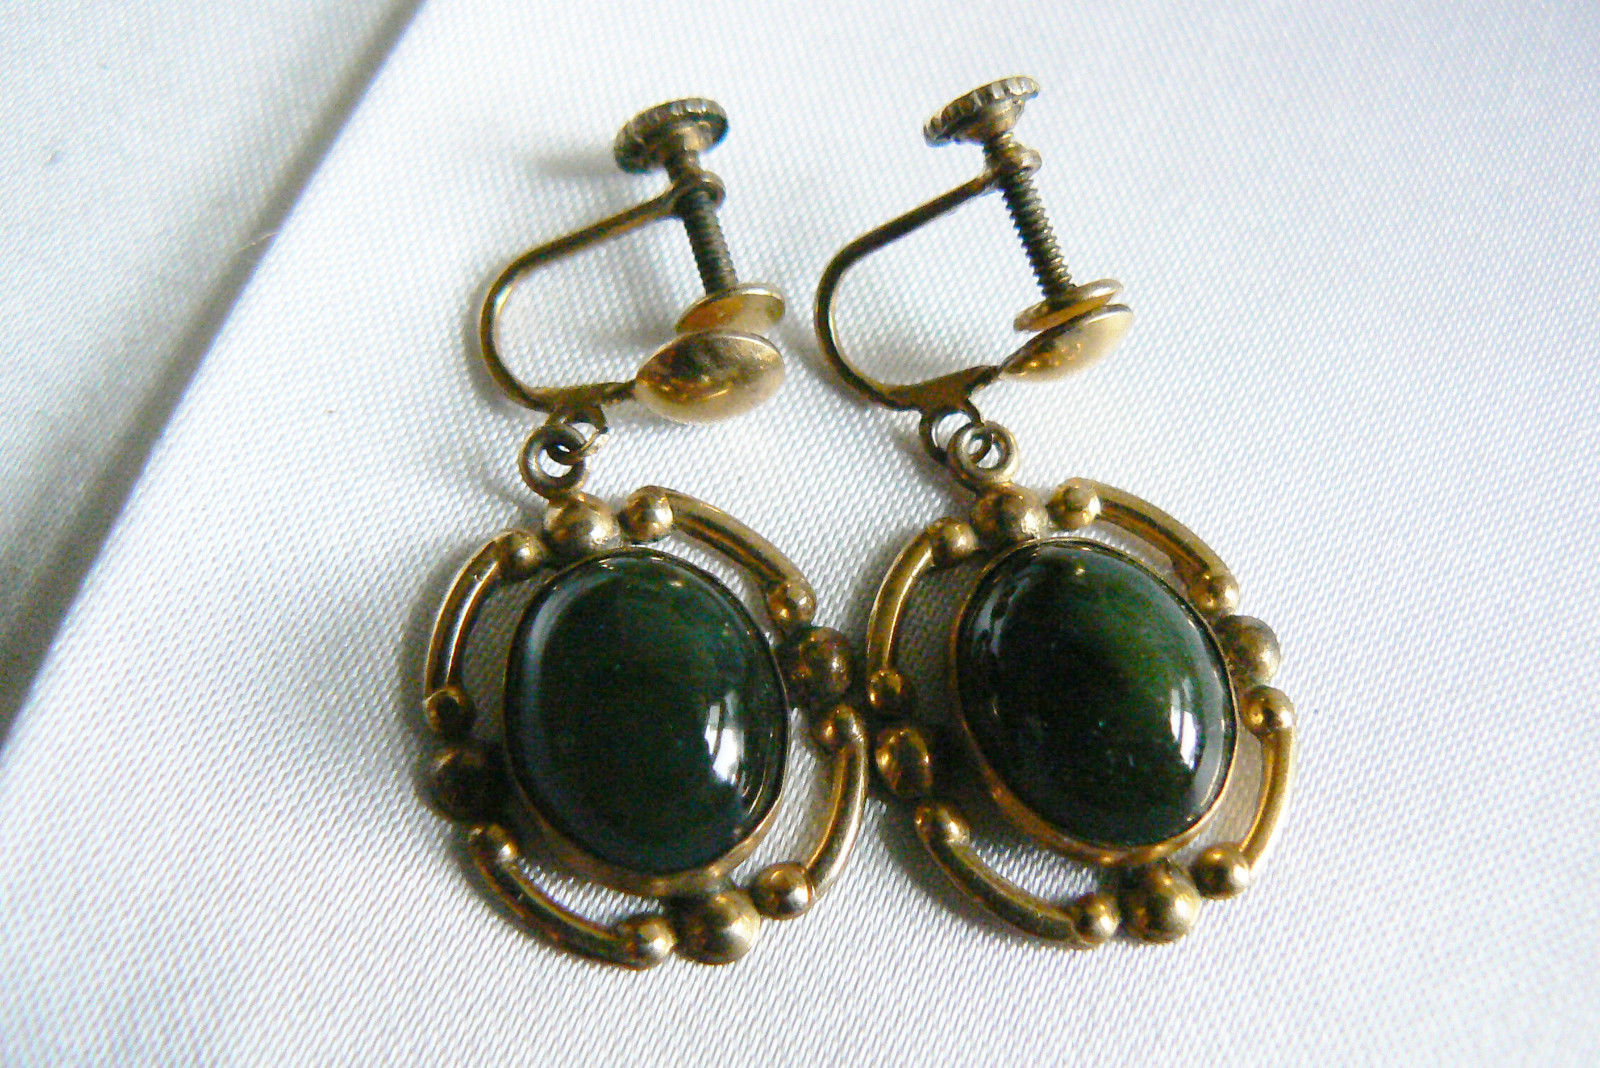 Primary image for VTG 12k GF Retro Green oval cut Jade stone screw clip earrings